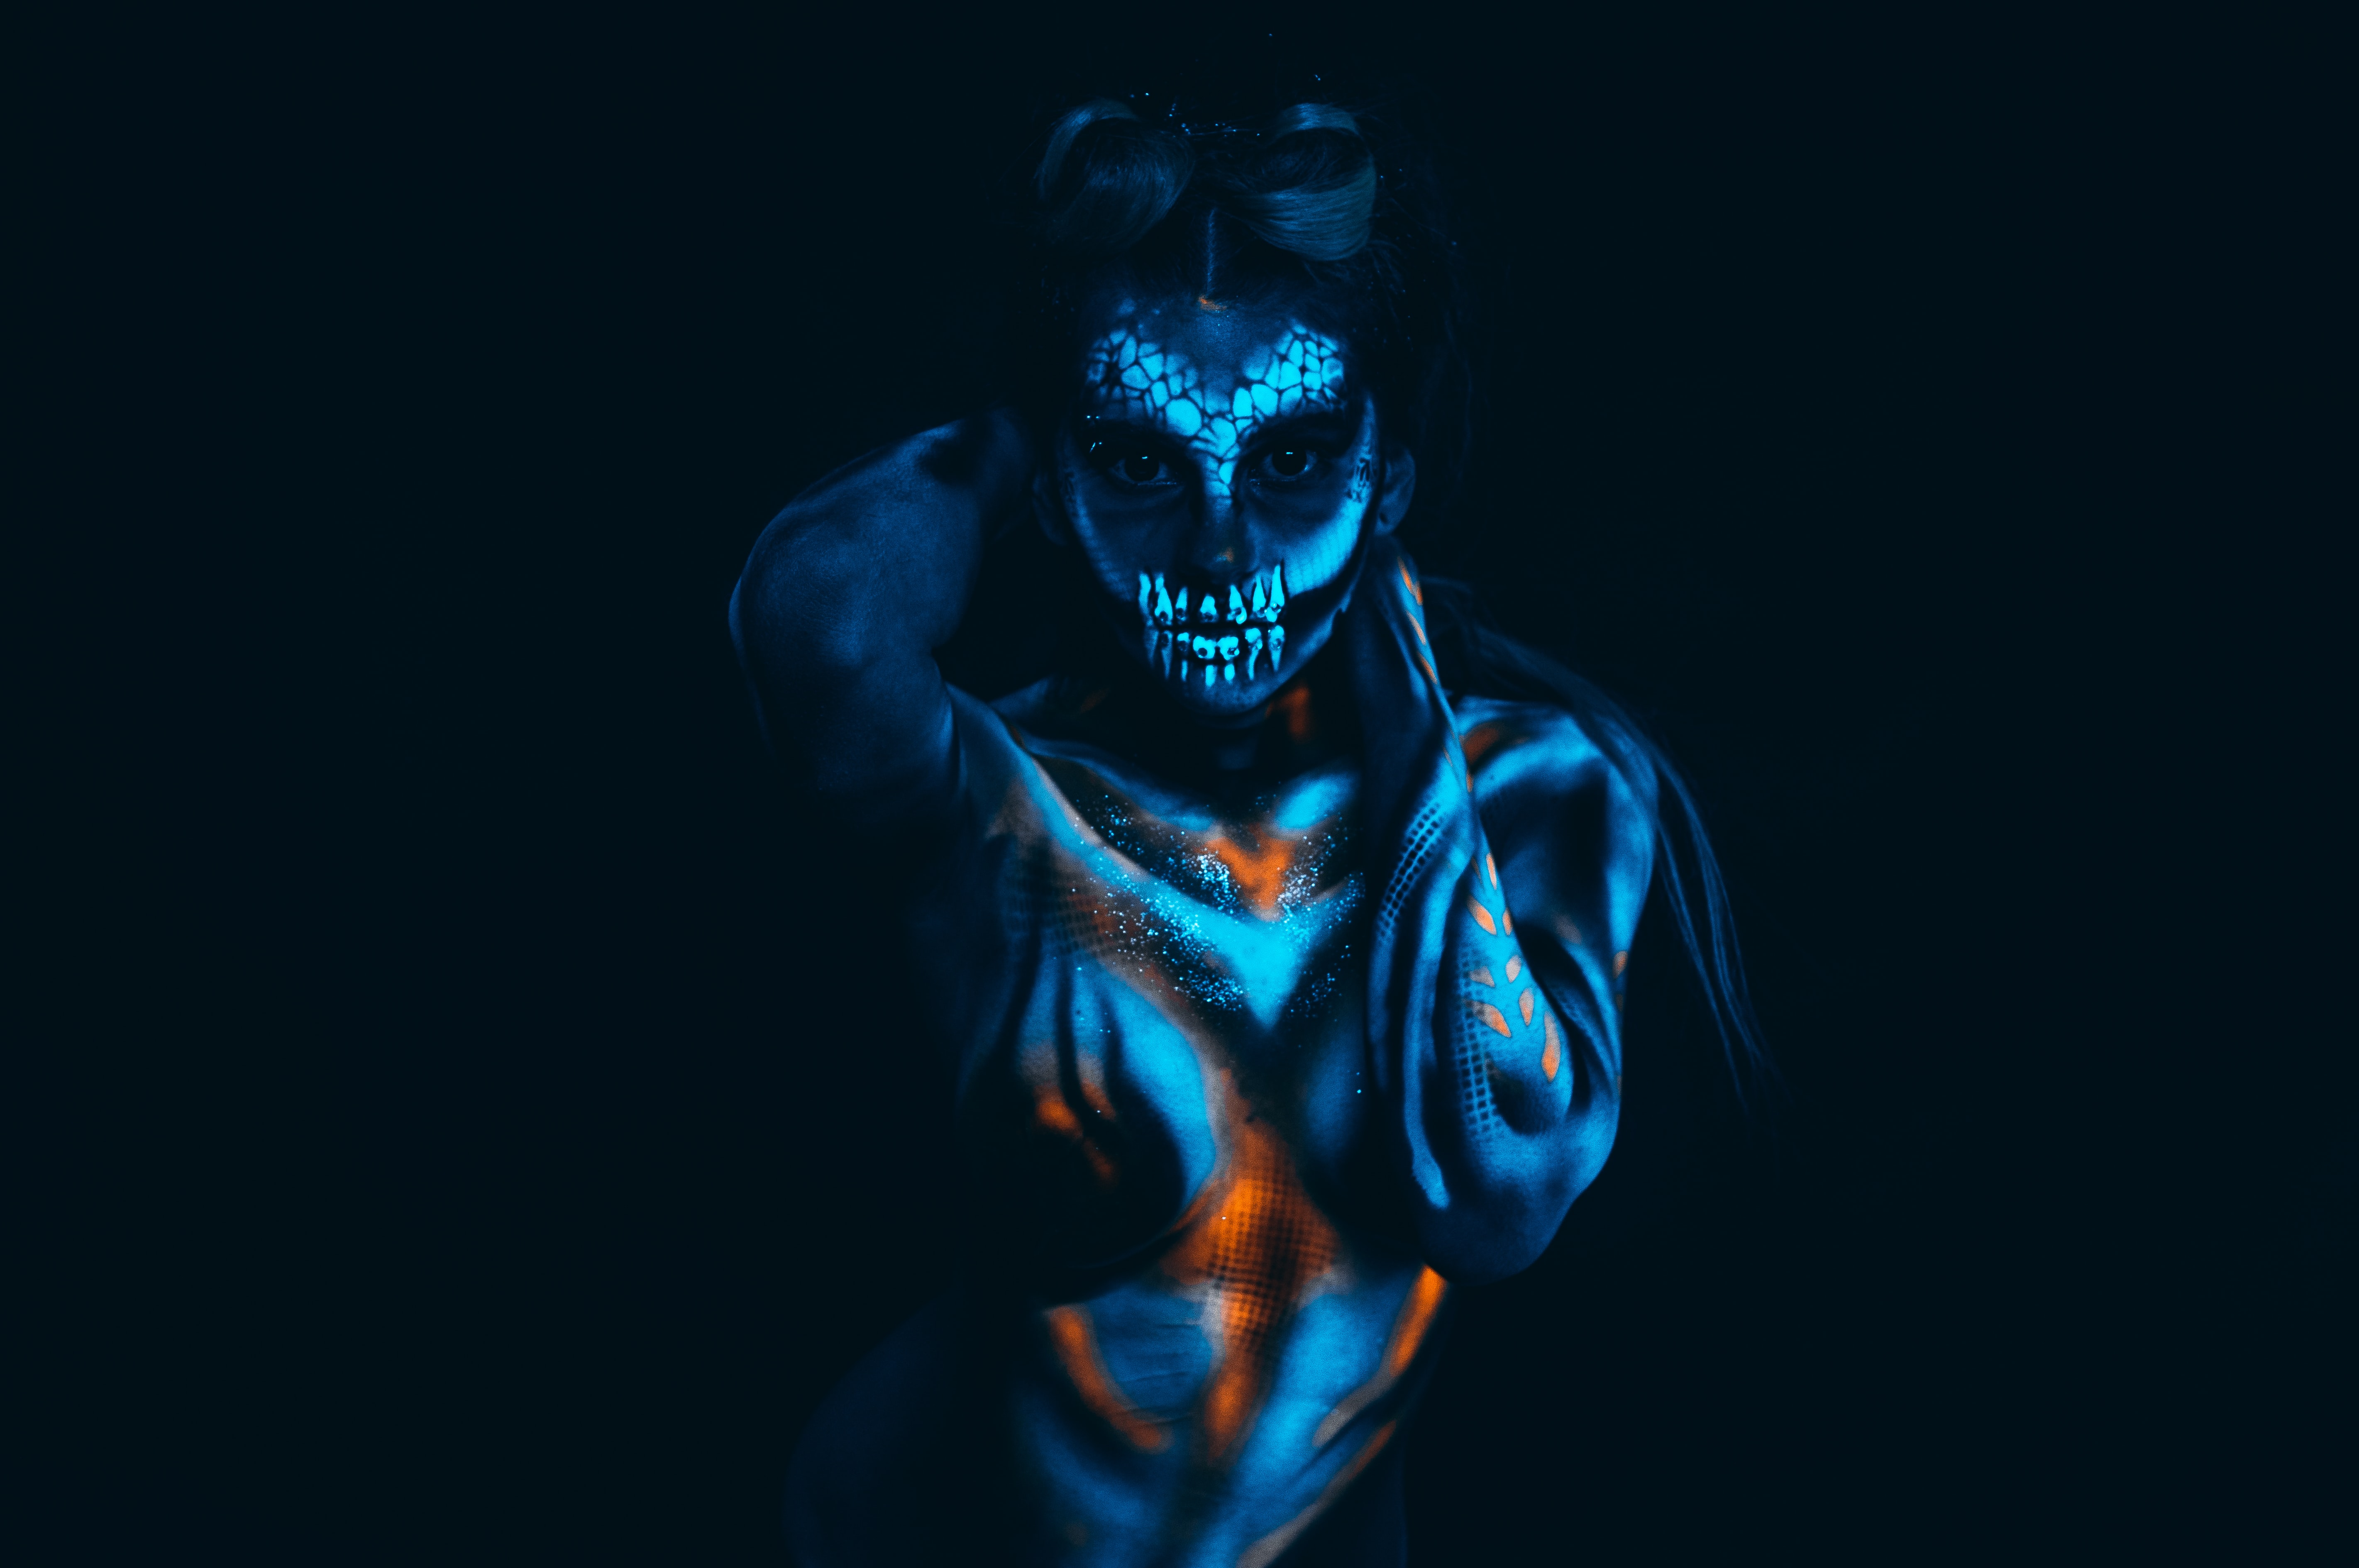 woman doing pose with body paint